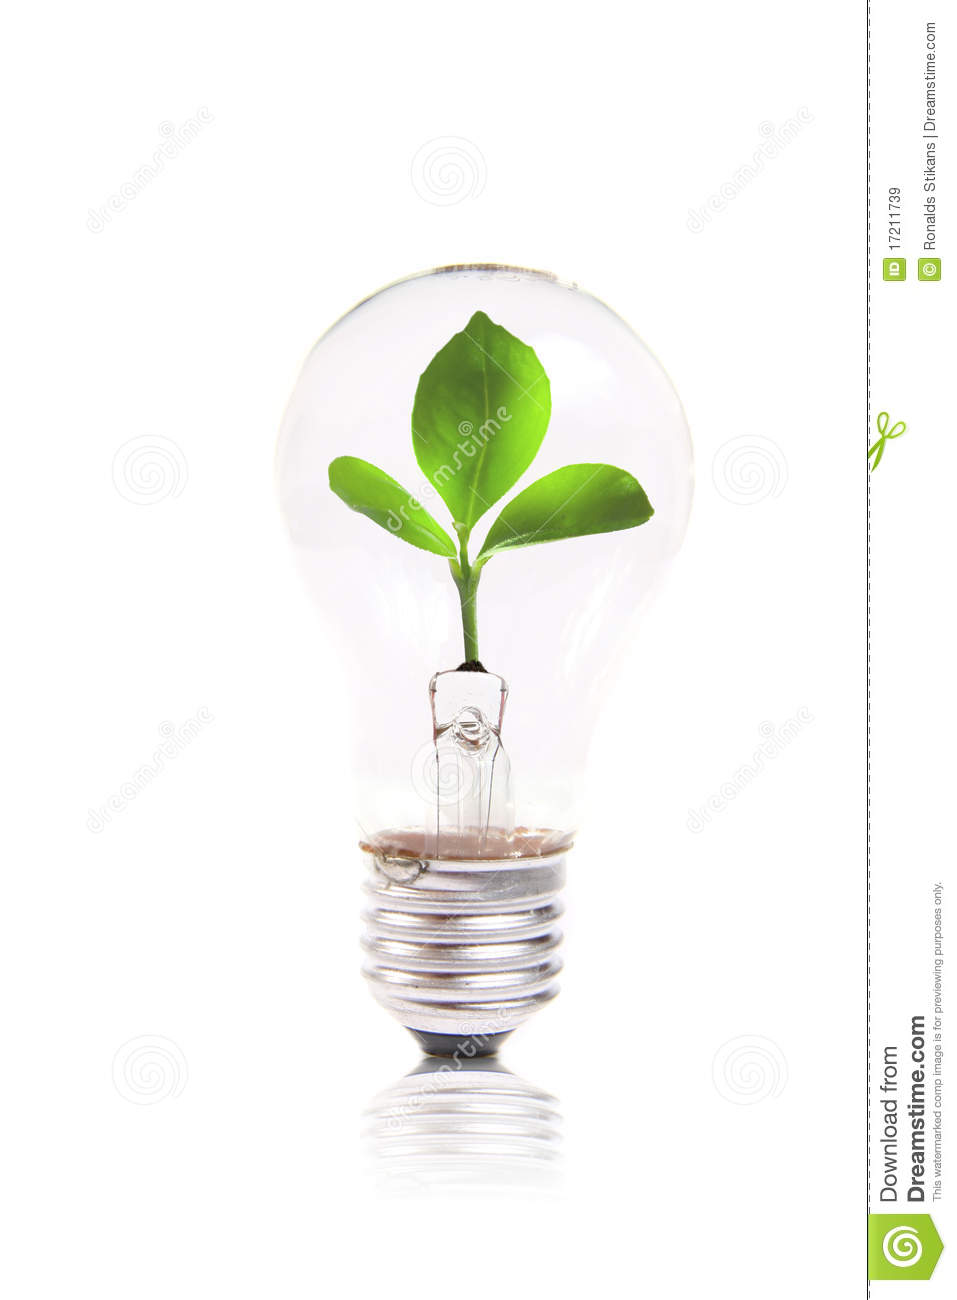 eco concept lightbulb with green plant inside royalty free stock images image 17211739. Black Bedroom Furniture Sets. Home Design Ideas